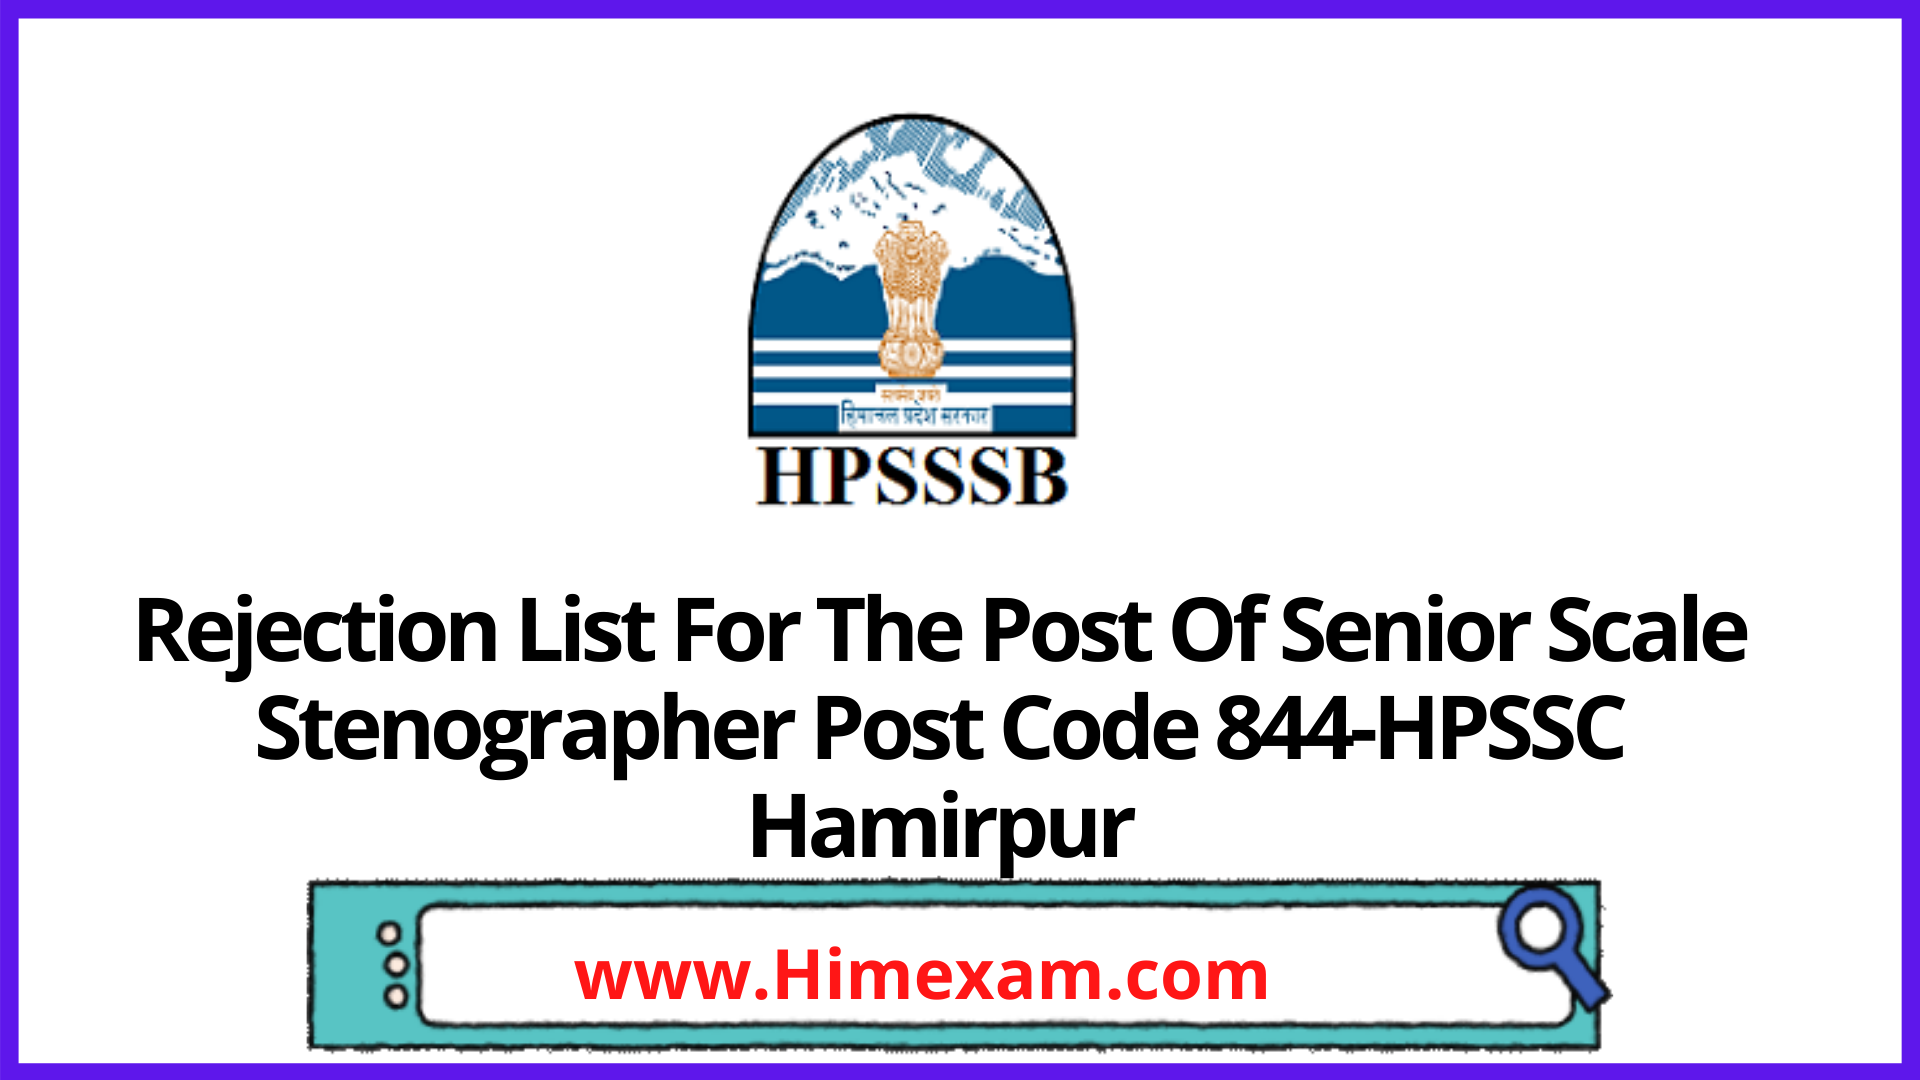 Rejection List For The Post Of Senior Scale Stenographer Post Code 844-HPSSC Hamirpur